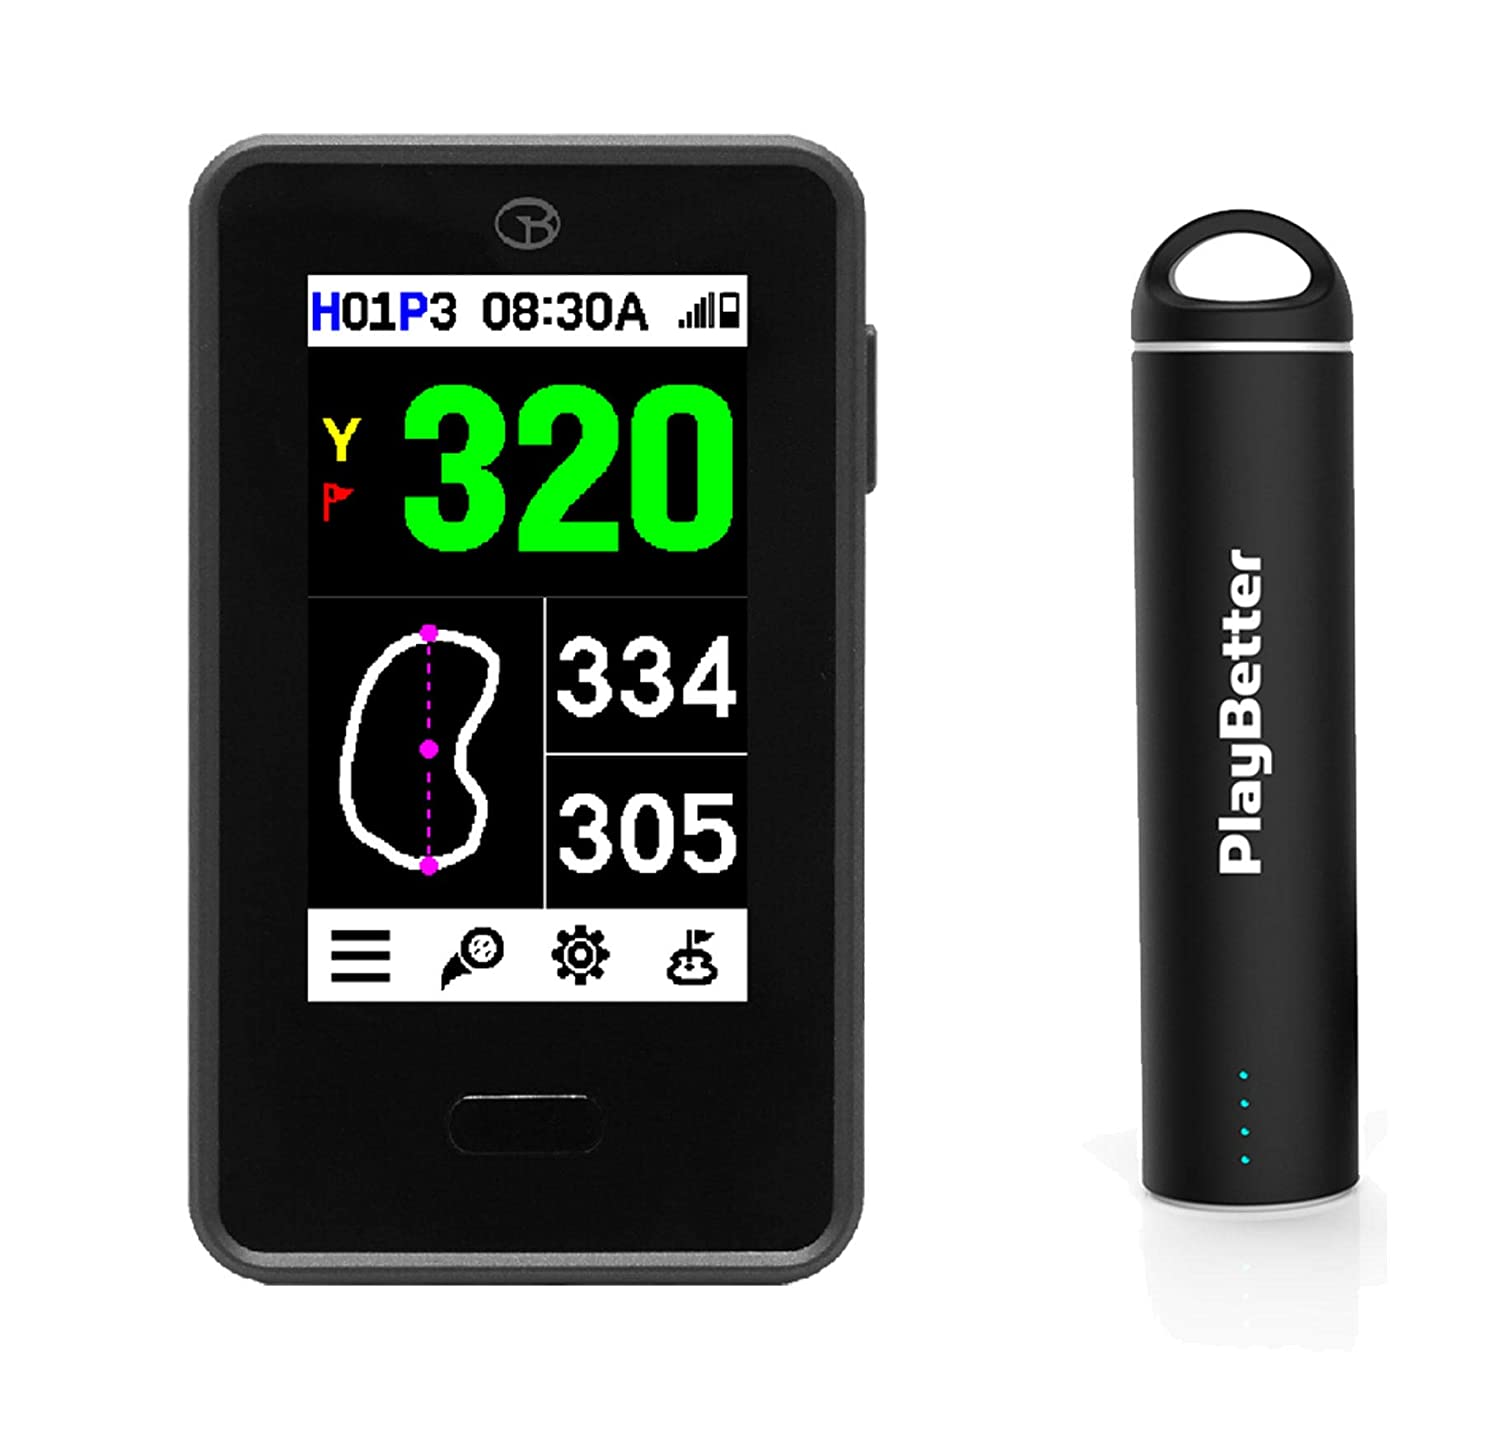 Golf Buddy VTX Handheld Golf GPS with Voice | Power Bundle with PlayBetter  Portable USB Charger (2200mAh) | Most Advanced Talking GPS, Full-Color